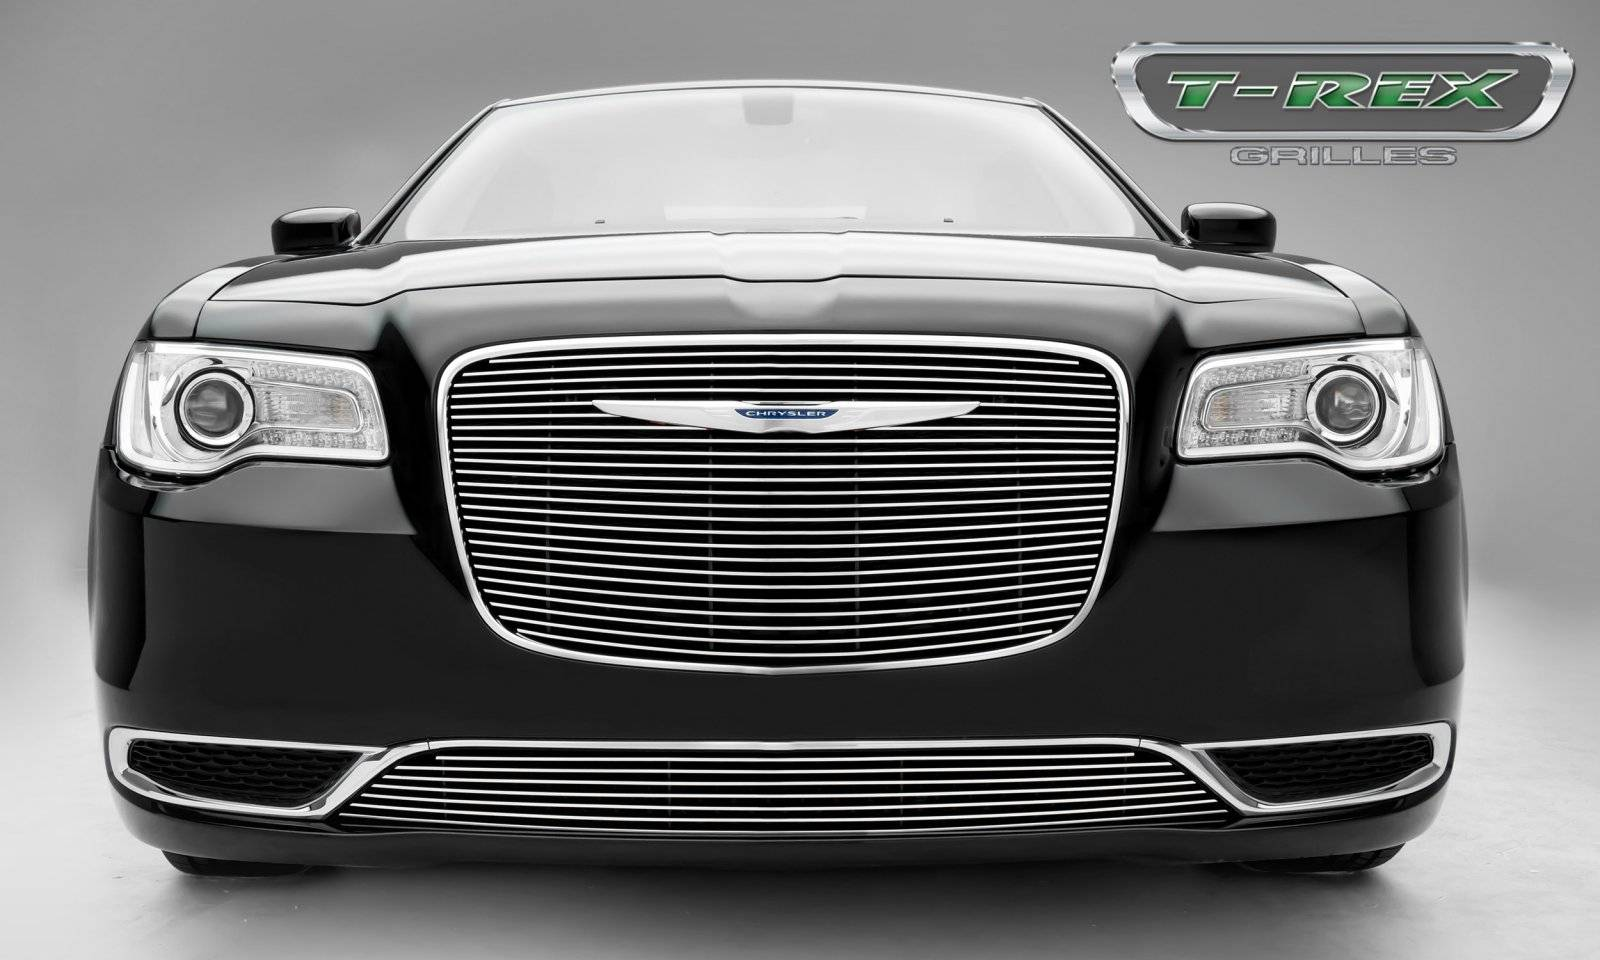 T-REX Chrysler 300 - Billet Series - Main Grille Overlay with Black Powder Coat Aluminum Bars and Polished Face - Pt # 21436